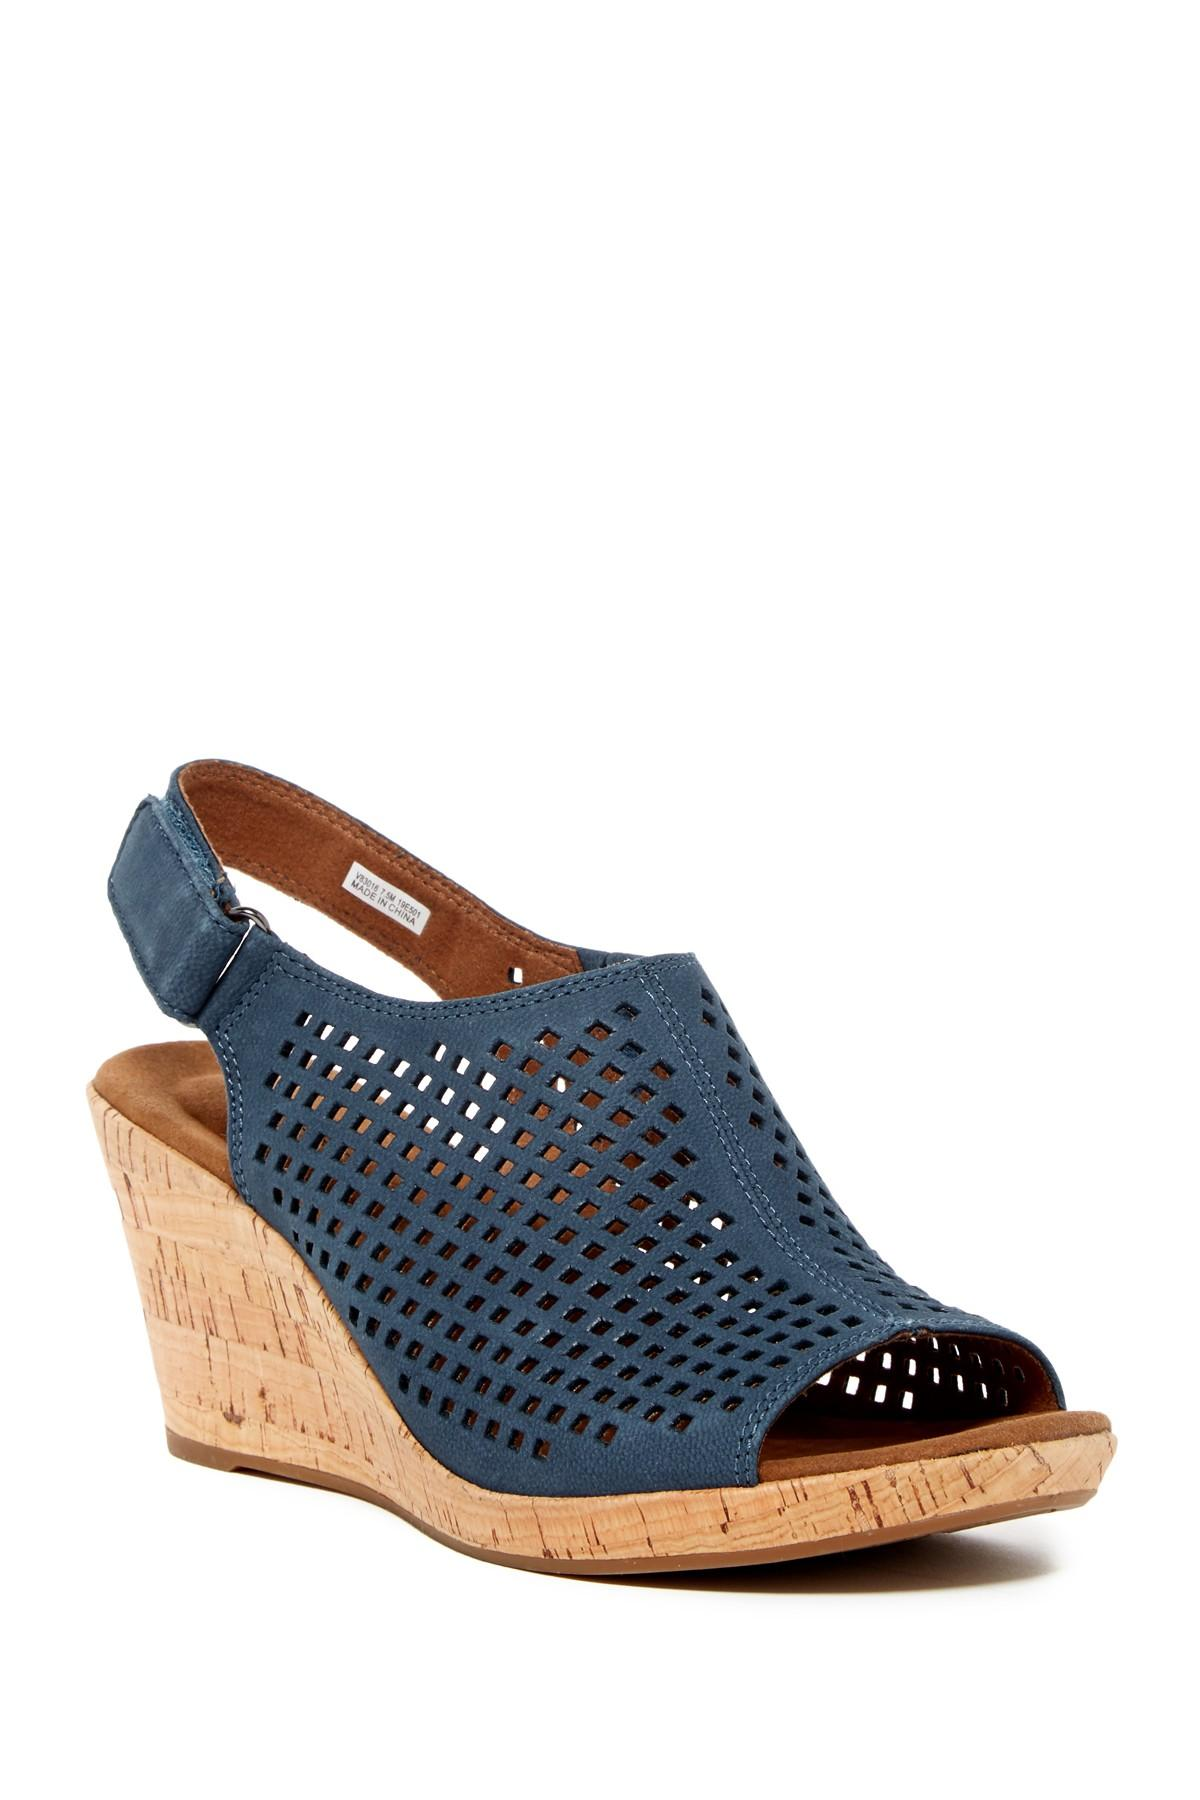 Lyst Rockport Briah Perforated Slingback Wedge Sandal In